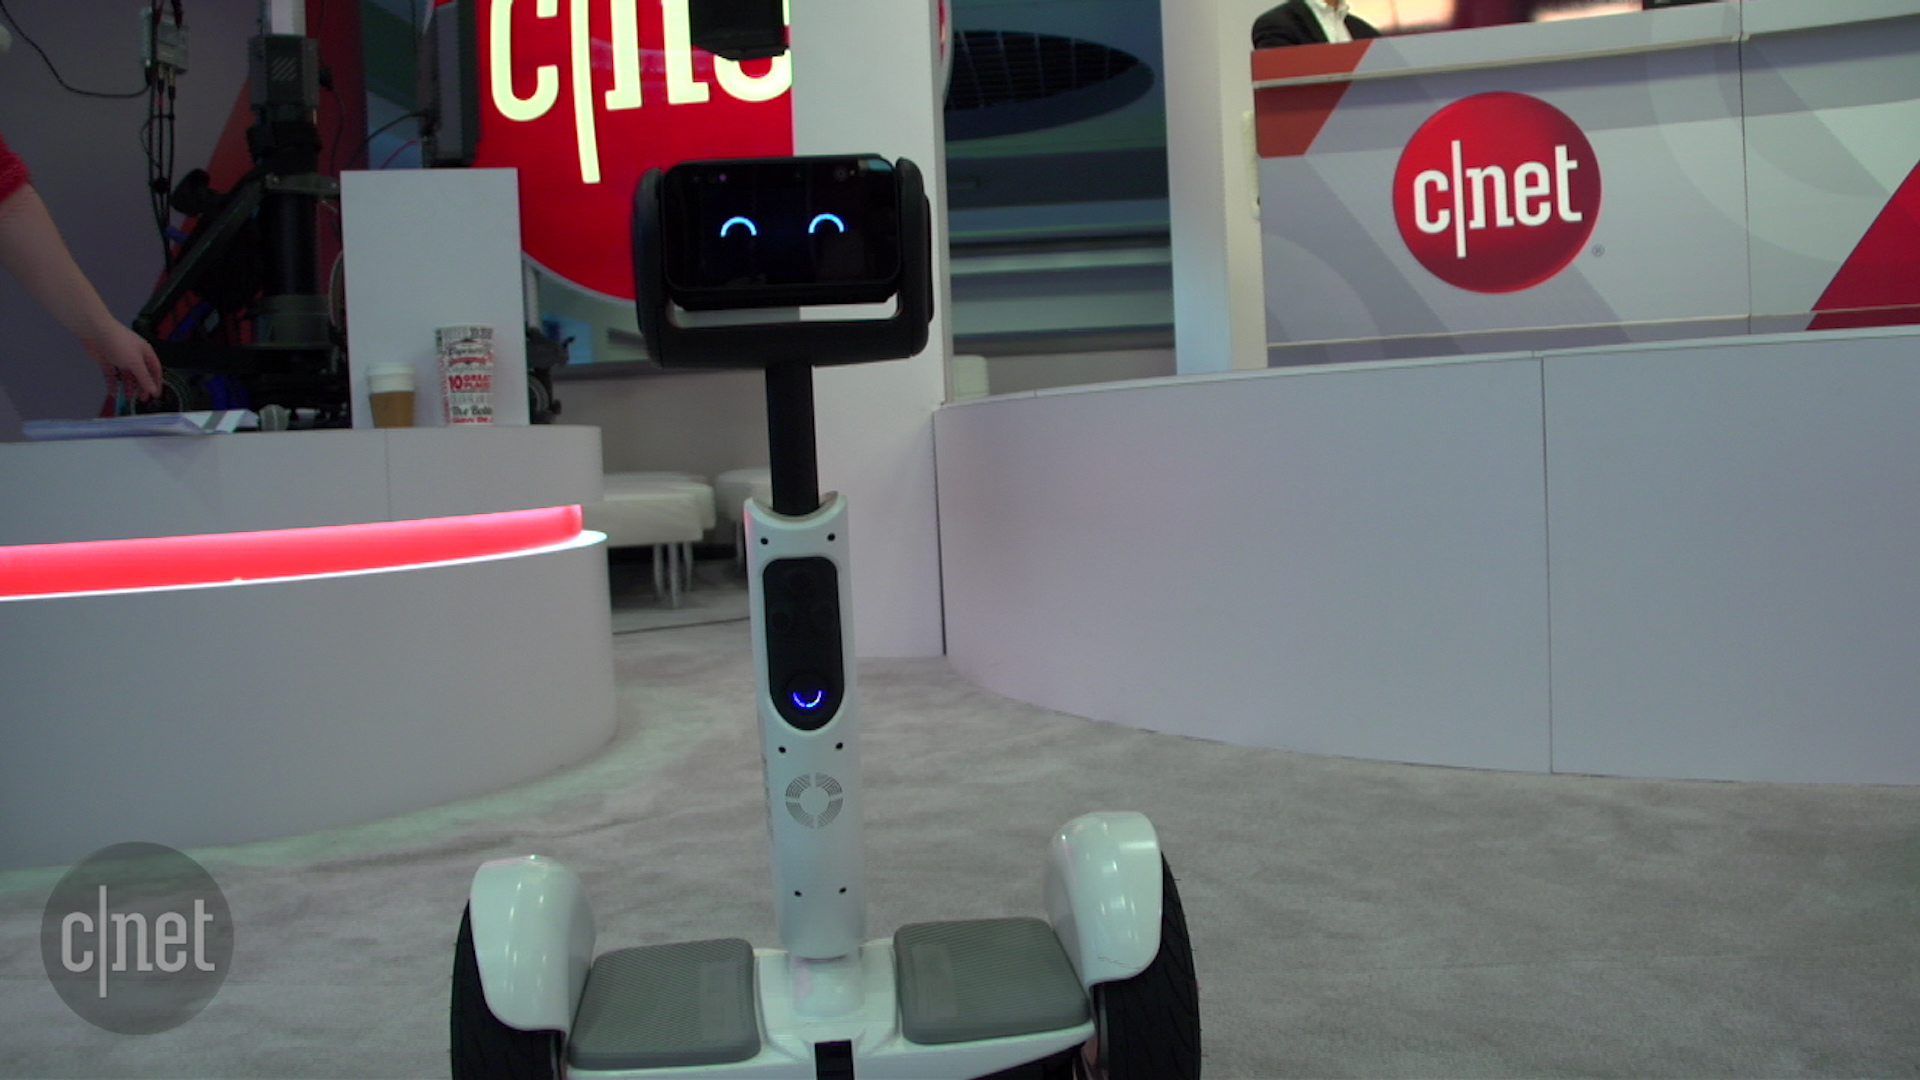 Video: The Segway Ninebot is your new robot buddy that you can also ride